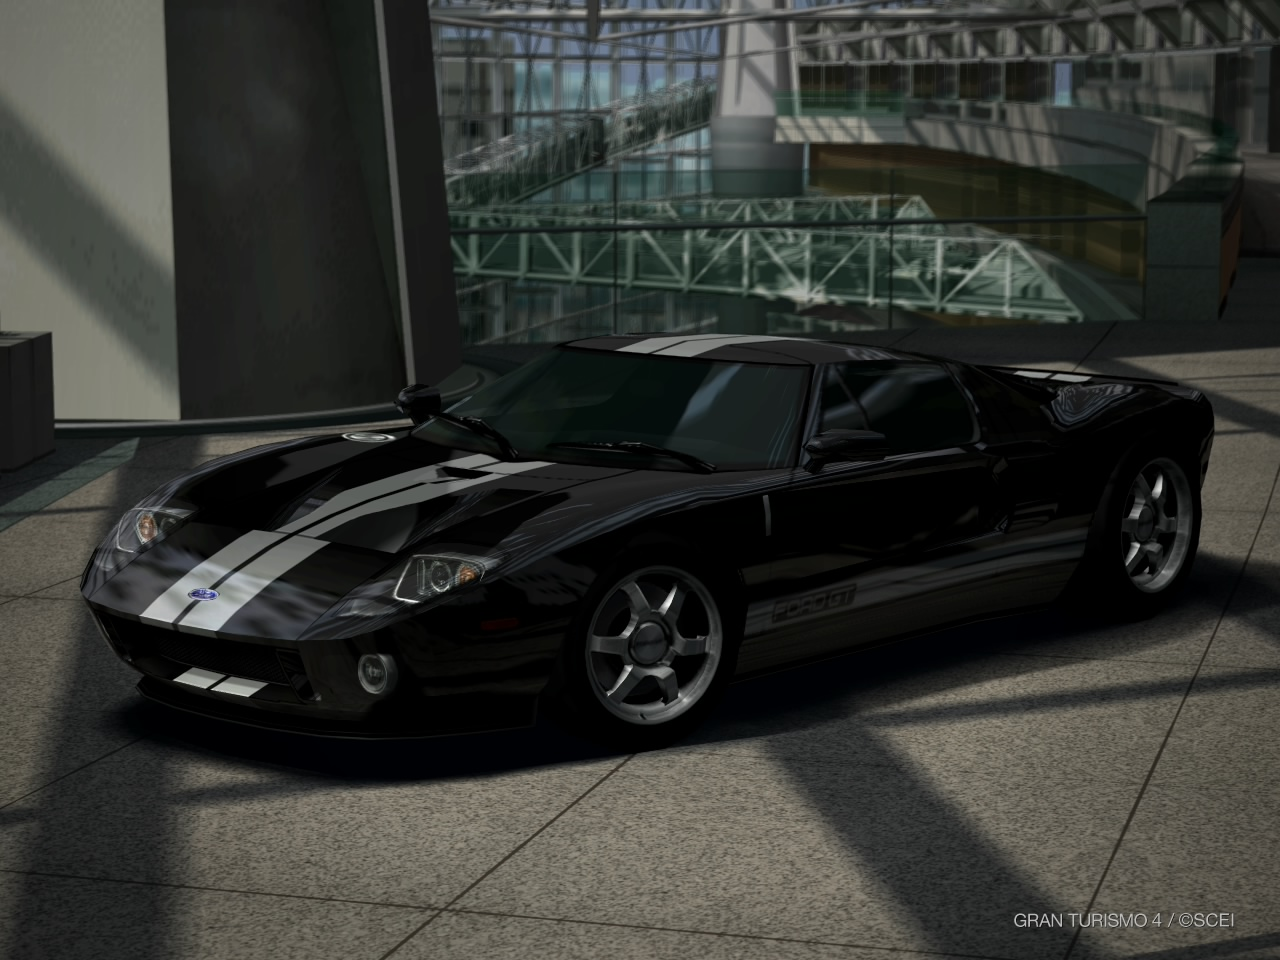 Ford ford gt car : Ford GT '05 | Gran Turismo Wiki | FANDOM powered by Wikia